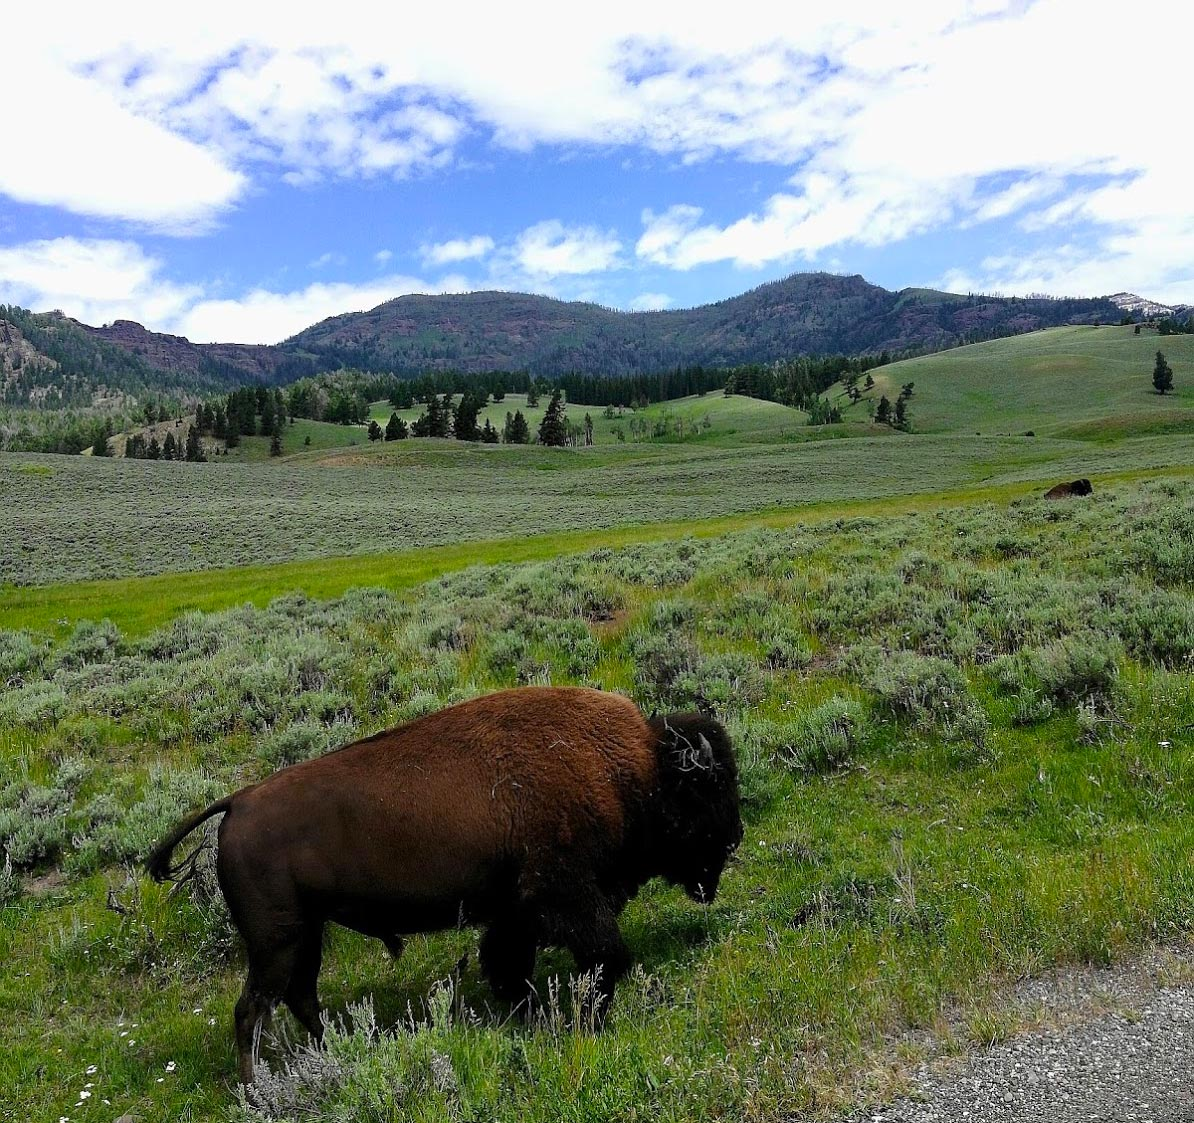 Bison on the side of the road in Lamar Valley, Yellowstone National Park